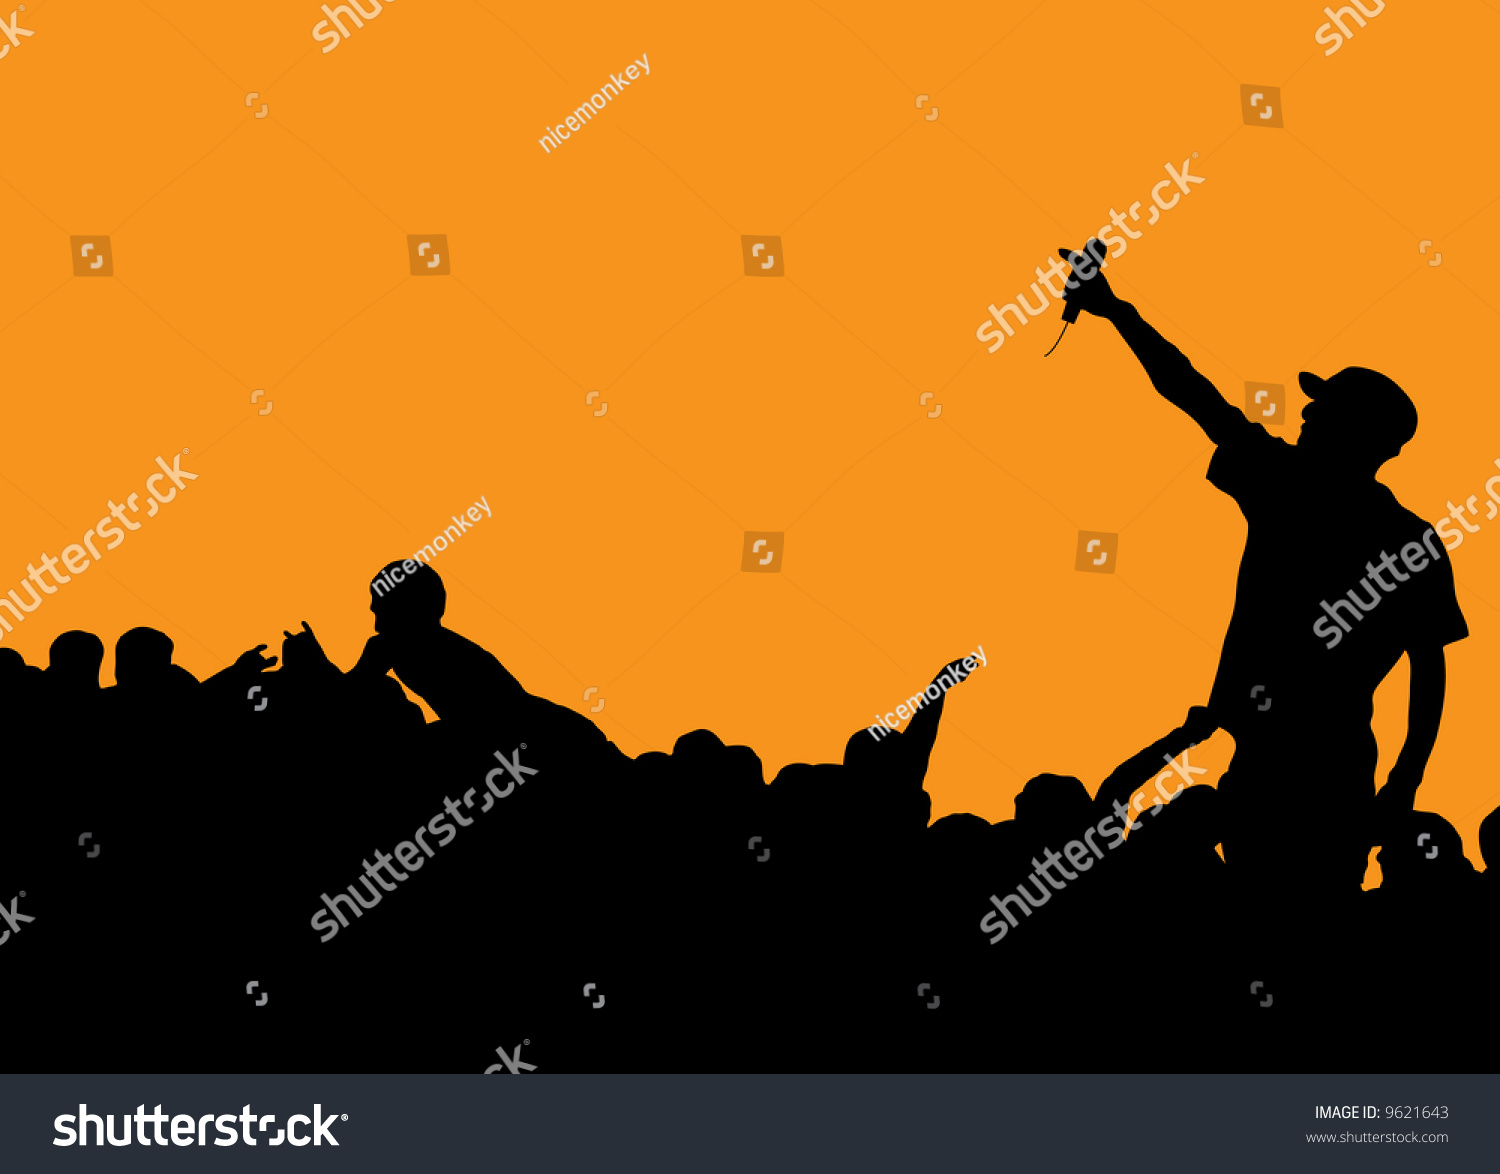 Pics photos rock concert background - Rock Concert With Singer Talking To The Crowd On An Orange Background